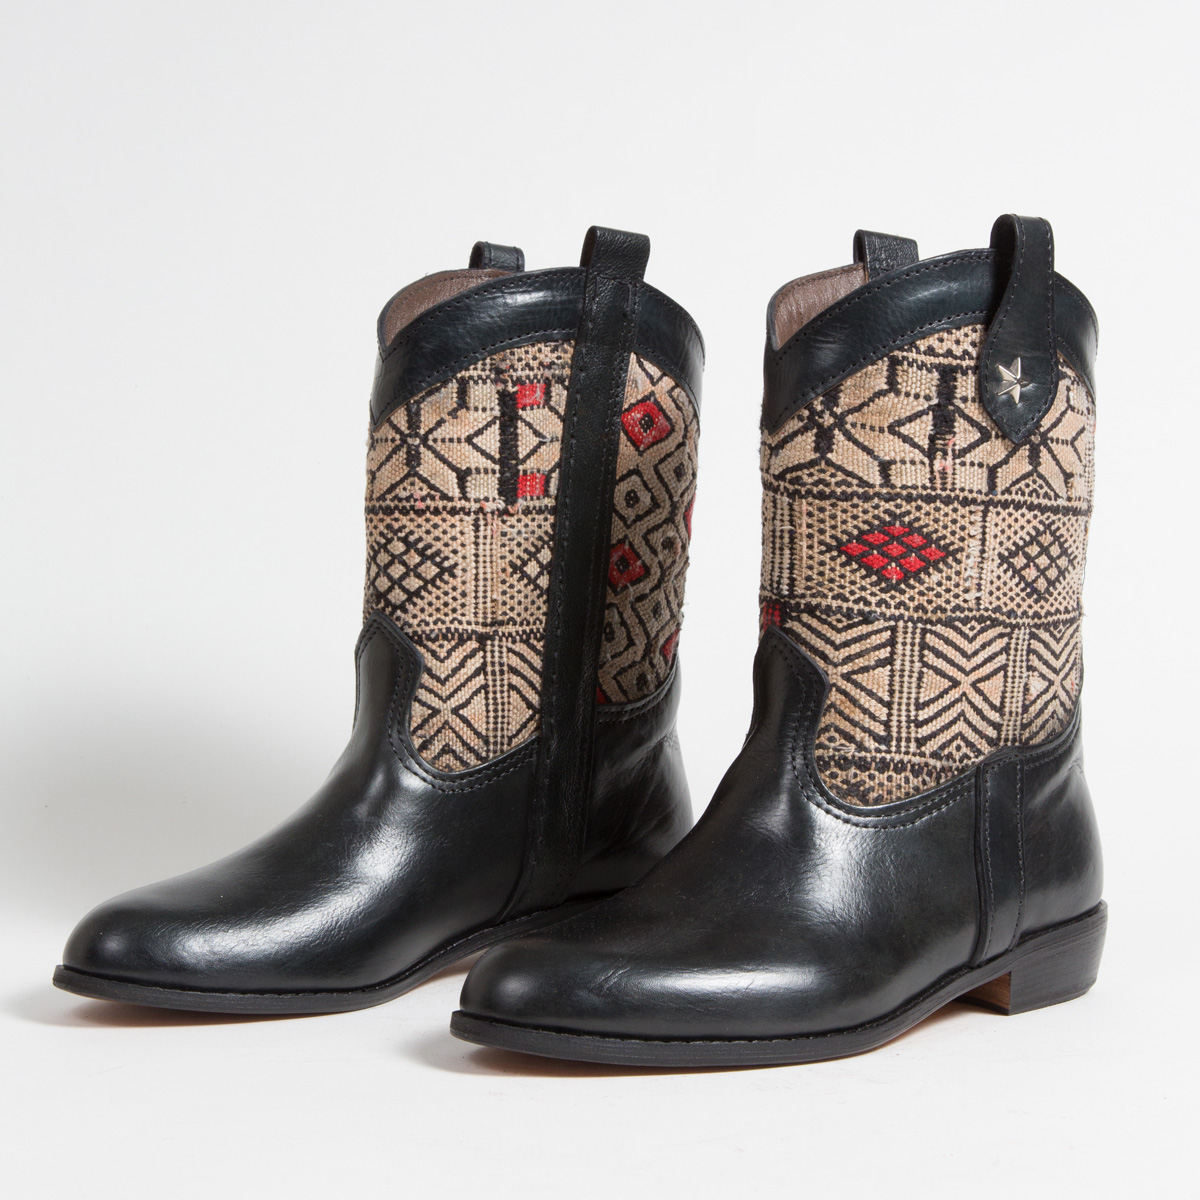 Bottines Kilim - images/kilim/bottines/mn11-01-40-kilim-artisanat-cuir-ethnique-marocaine-bottine-femme-s.jpg